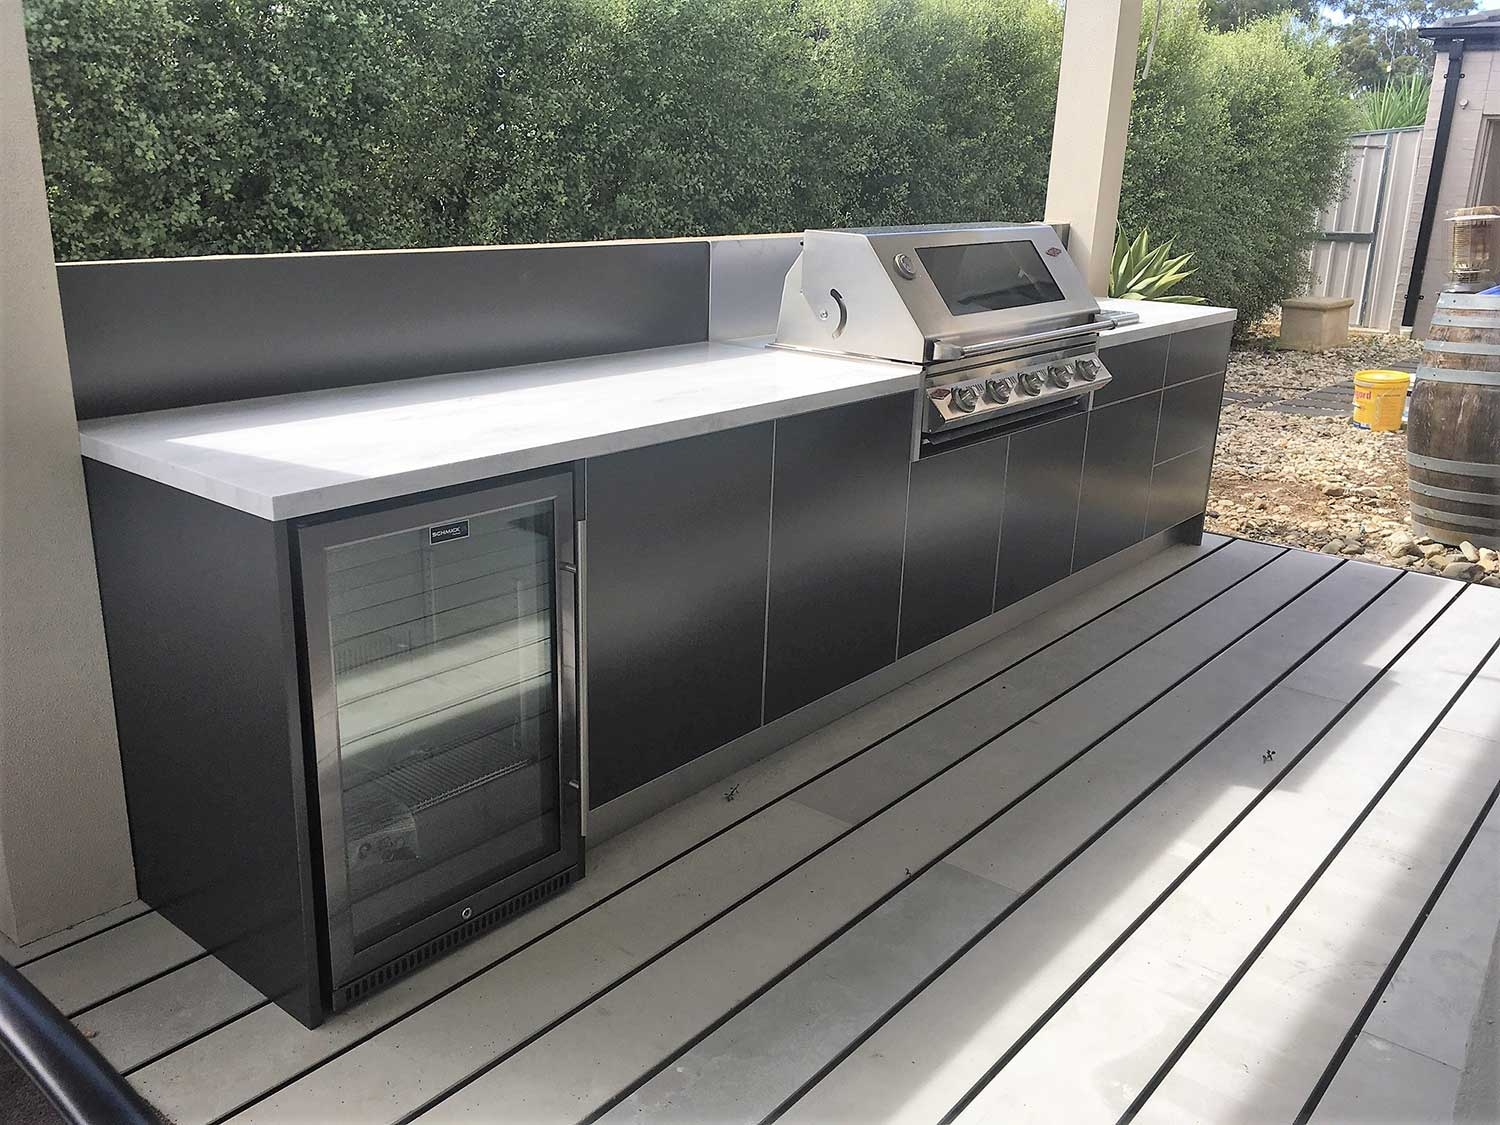 Beefeater-Signature-3000S-5-BNR-Metallic-Charcoal-Corian-Raincloud-Alfresco-Kitchen